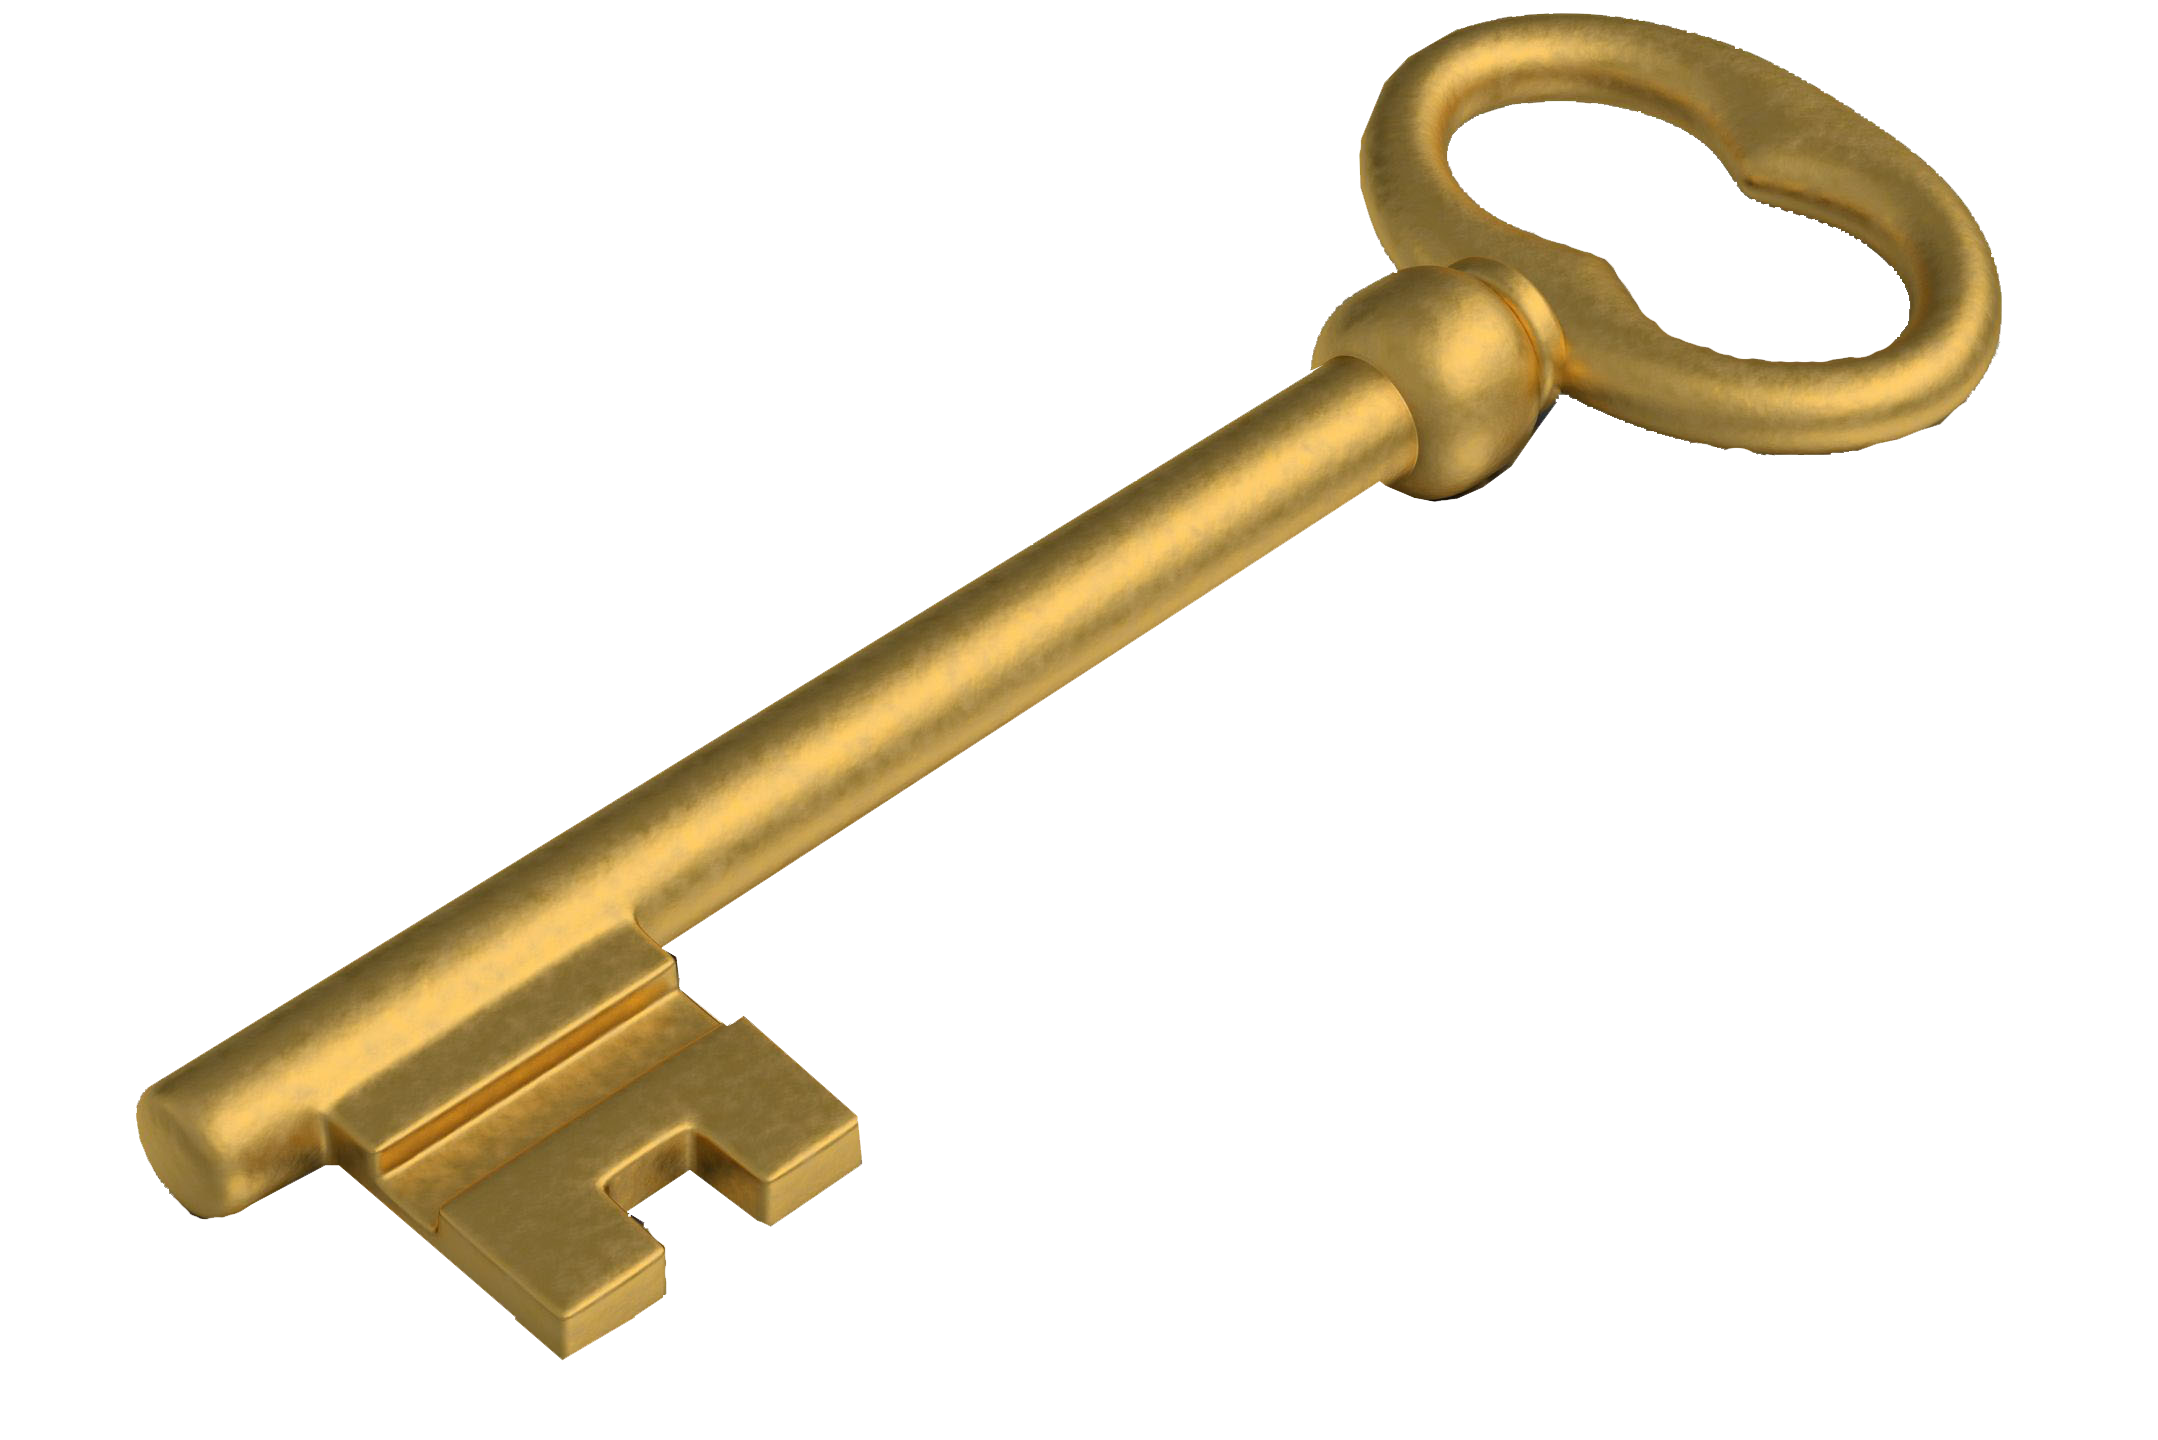 Golden Key - LIBERTY (SECURITY PRIVACY SAFETY) THE ILLUSION OF FREE WILL - UNIVERSAL SPENDING AUTHORITY - PRIVATE PROPERTY - FREE LAND - THERE IS NO GOVERNMENT - A GUARANTEED LIFETIME INCOME - NOW YOU OWN YOUR HOME AND LAND - NOW YOU HAVE AN INCOME - YOU WILL ALWAYS OWN YOUR HOME AND LAND - YOU ARE SAFE AND SECURE